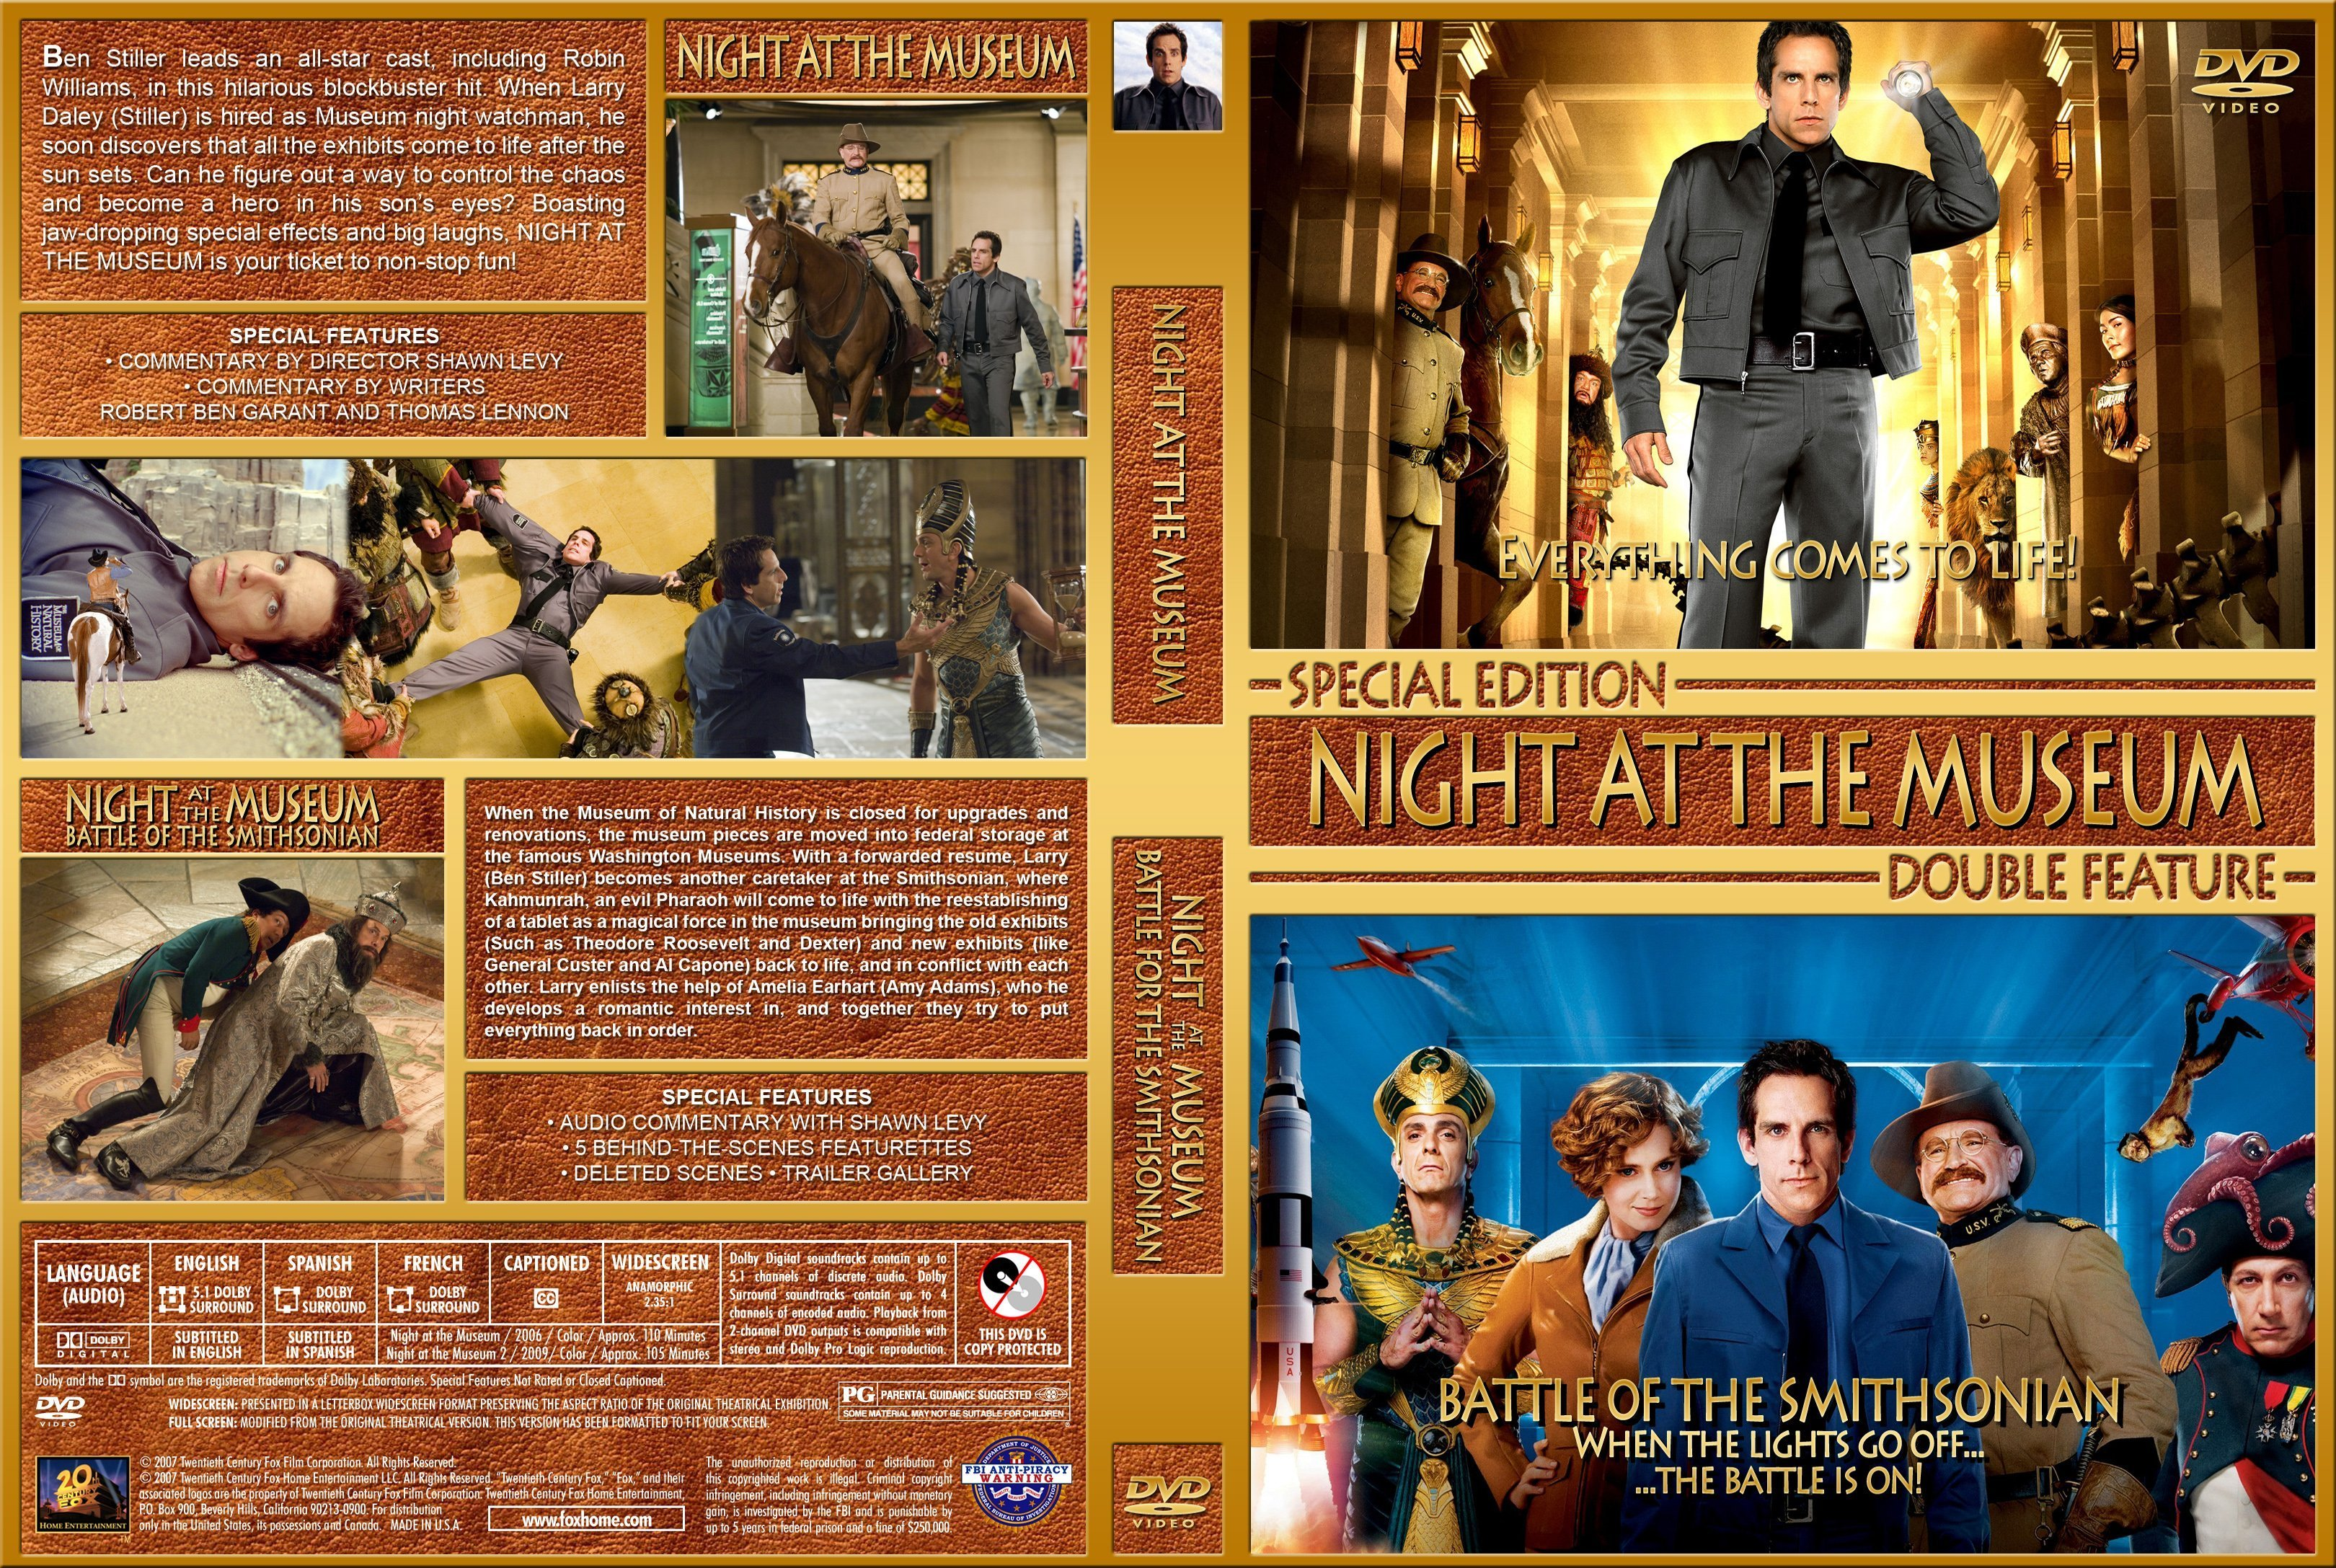 Night At The Museum Double Feature 2006 2009 R1 Custom